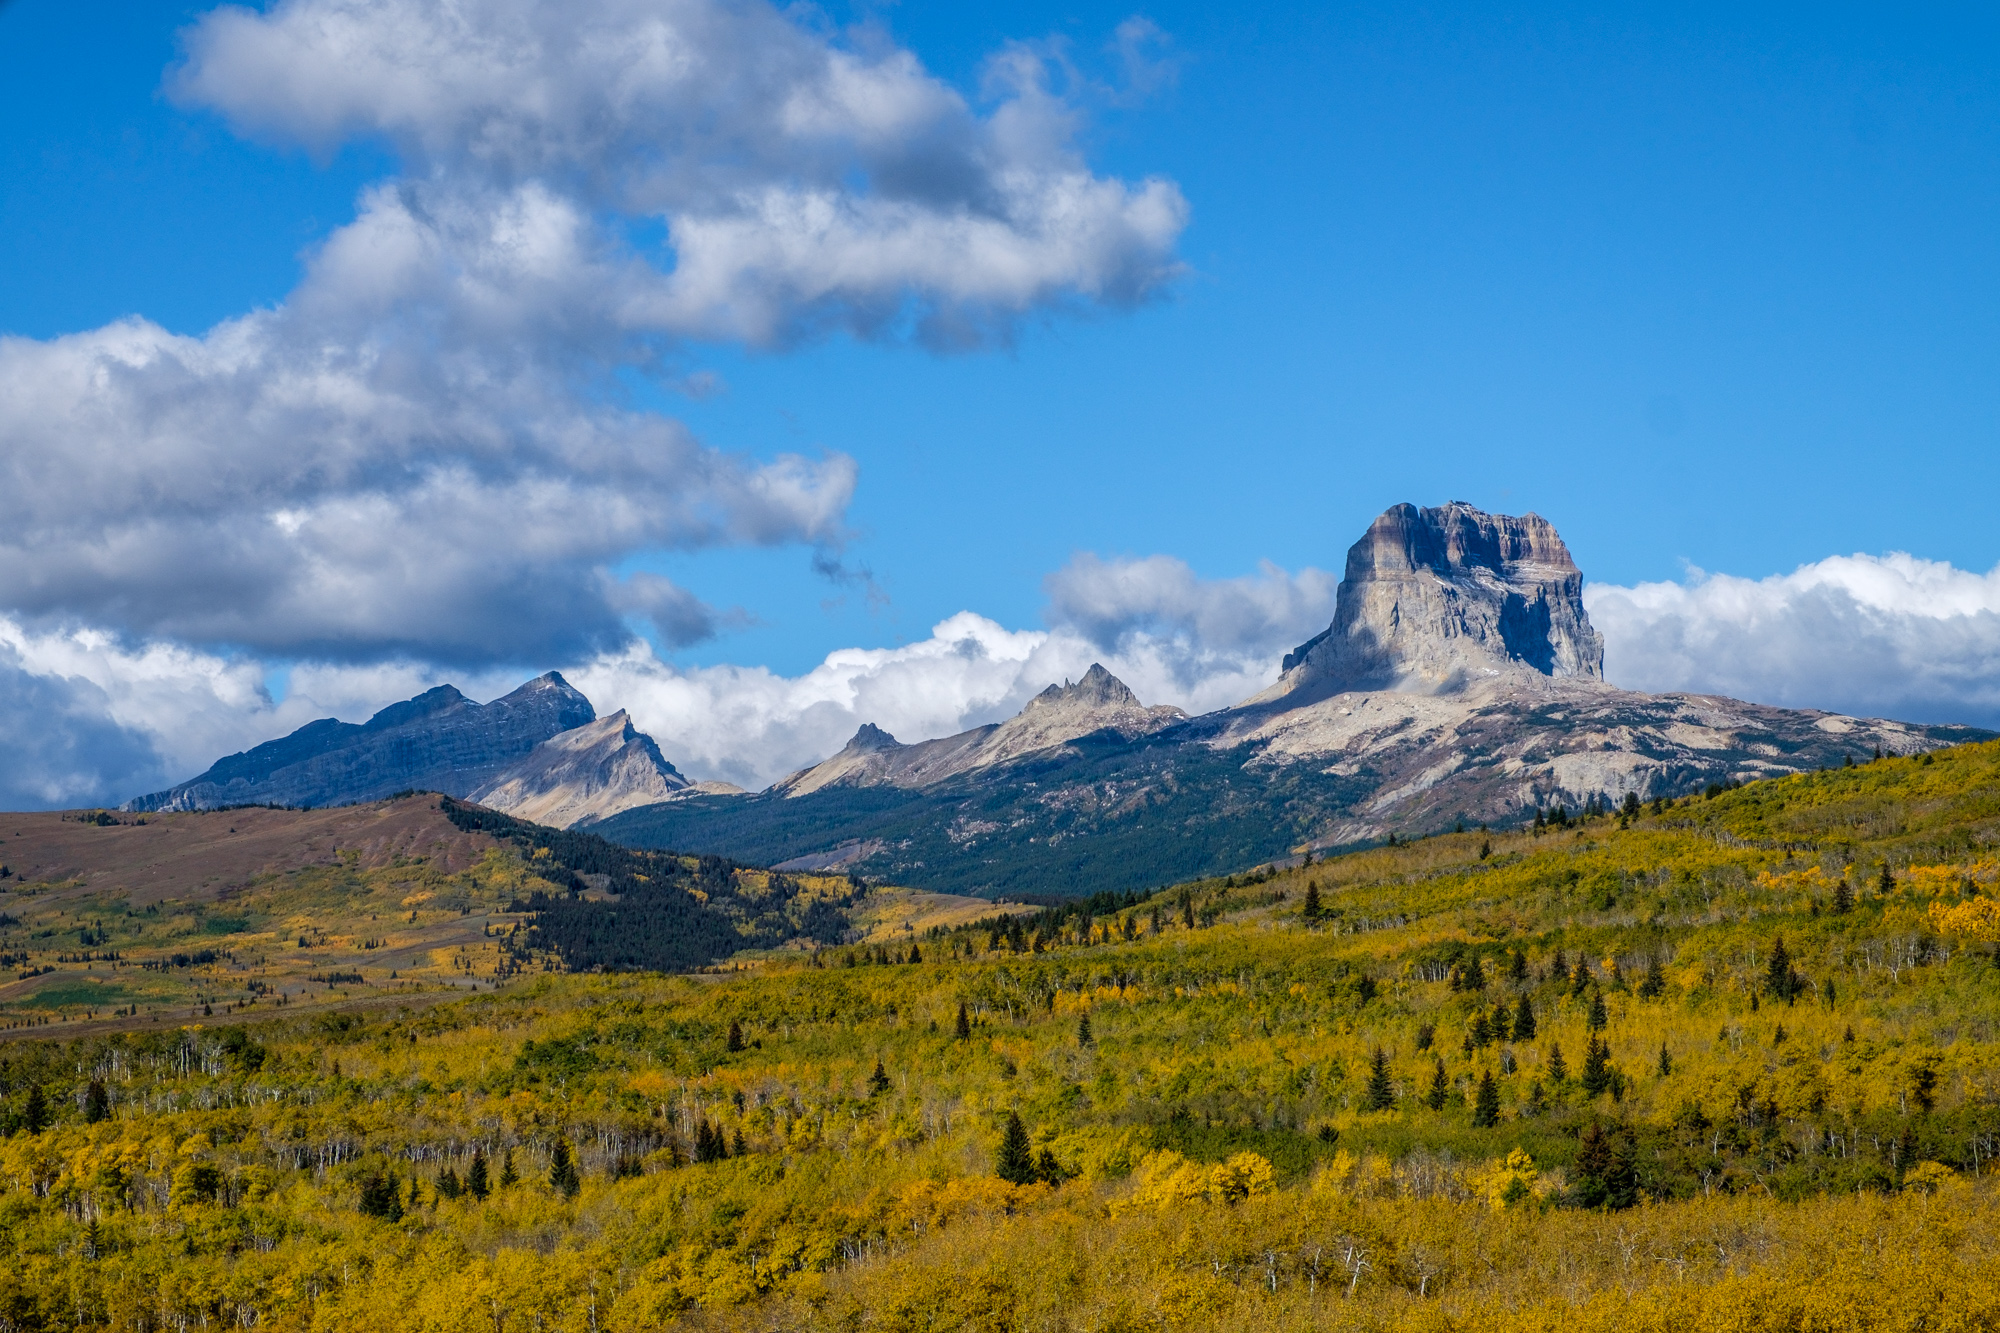 Chief Mountain is a sacred mountain to the Blackfeet tribe.